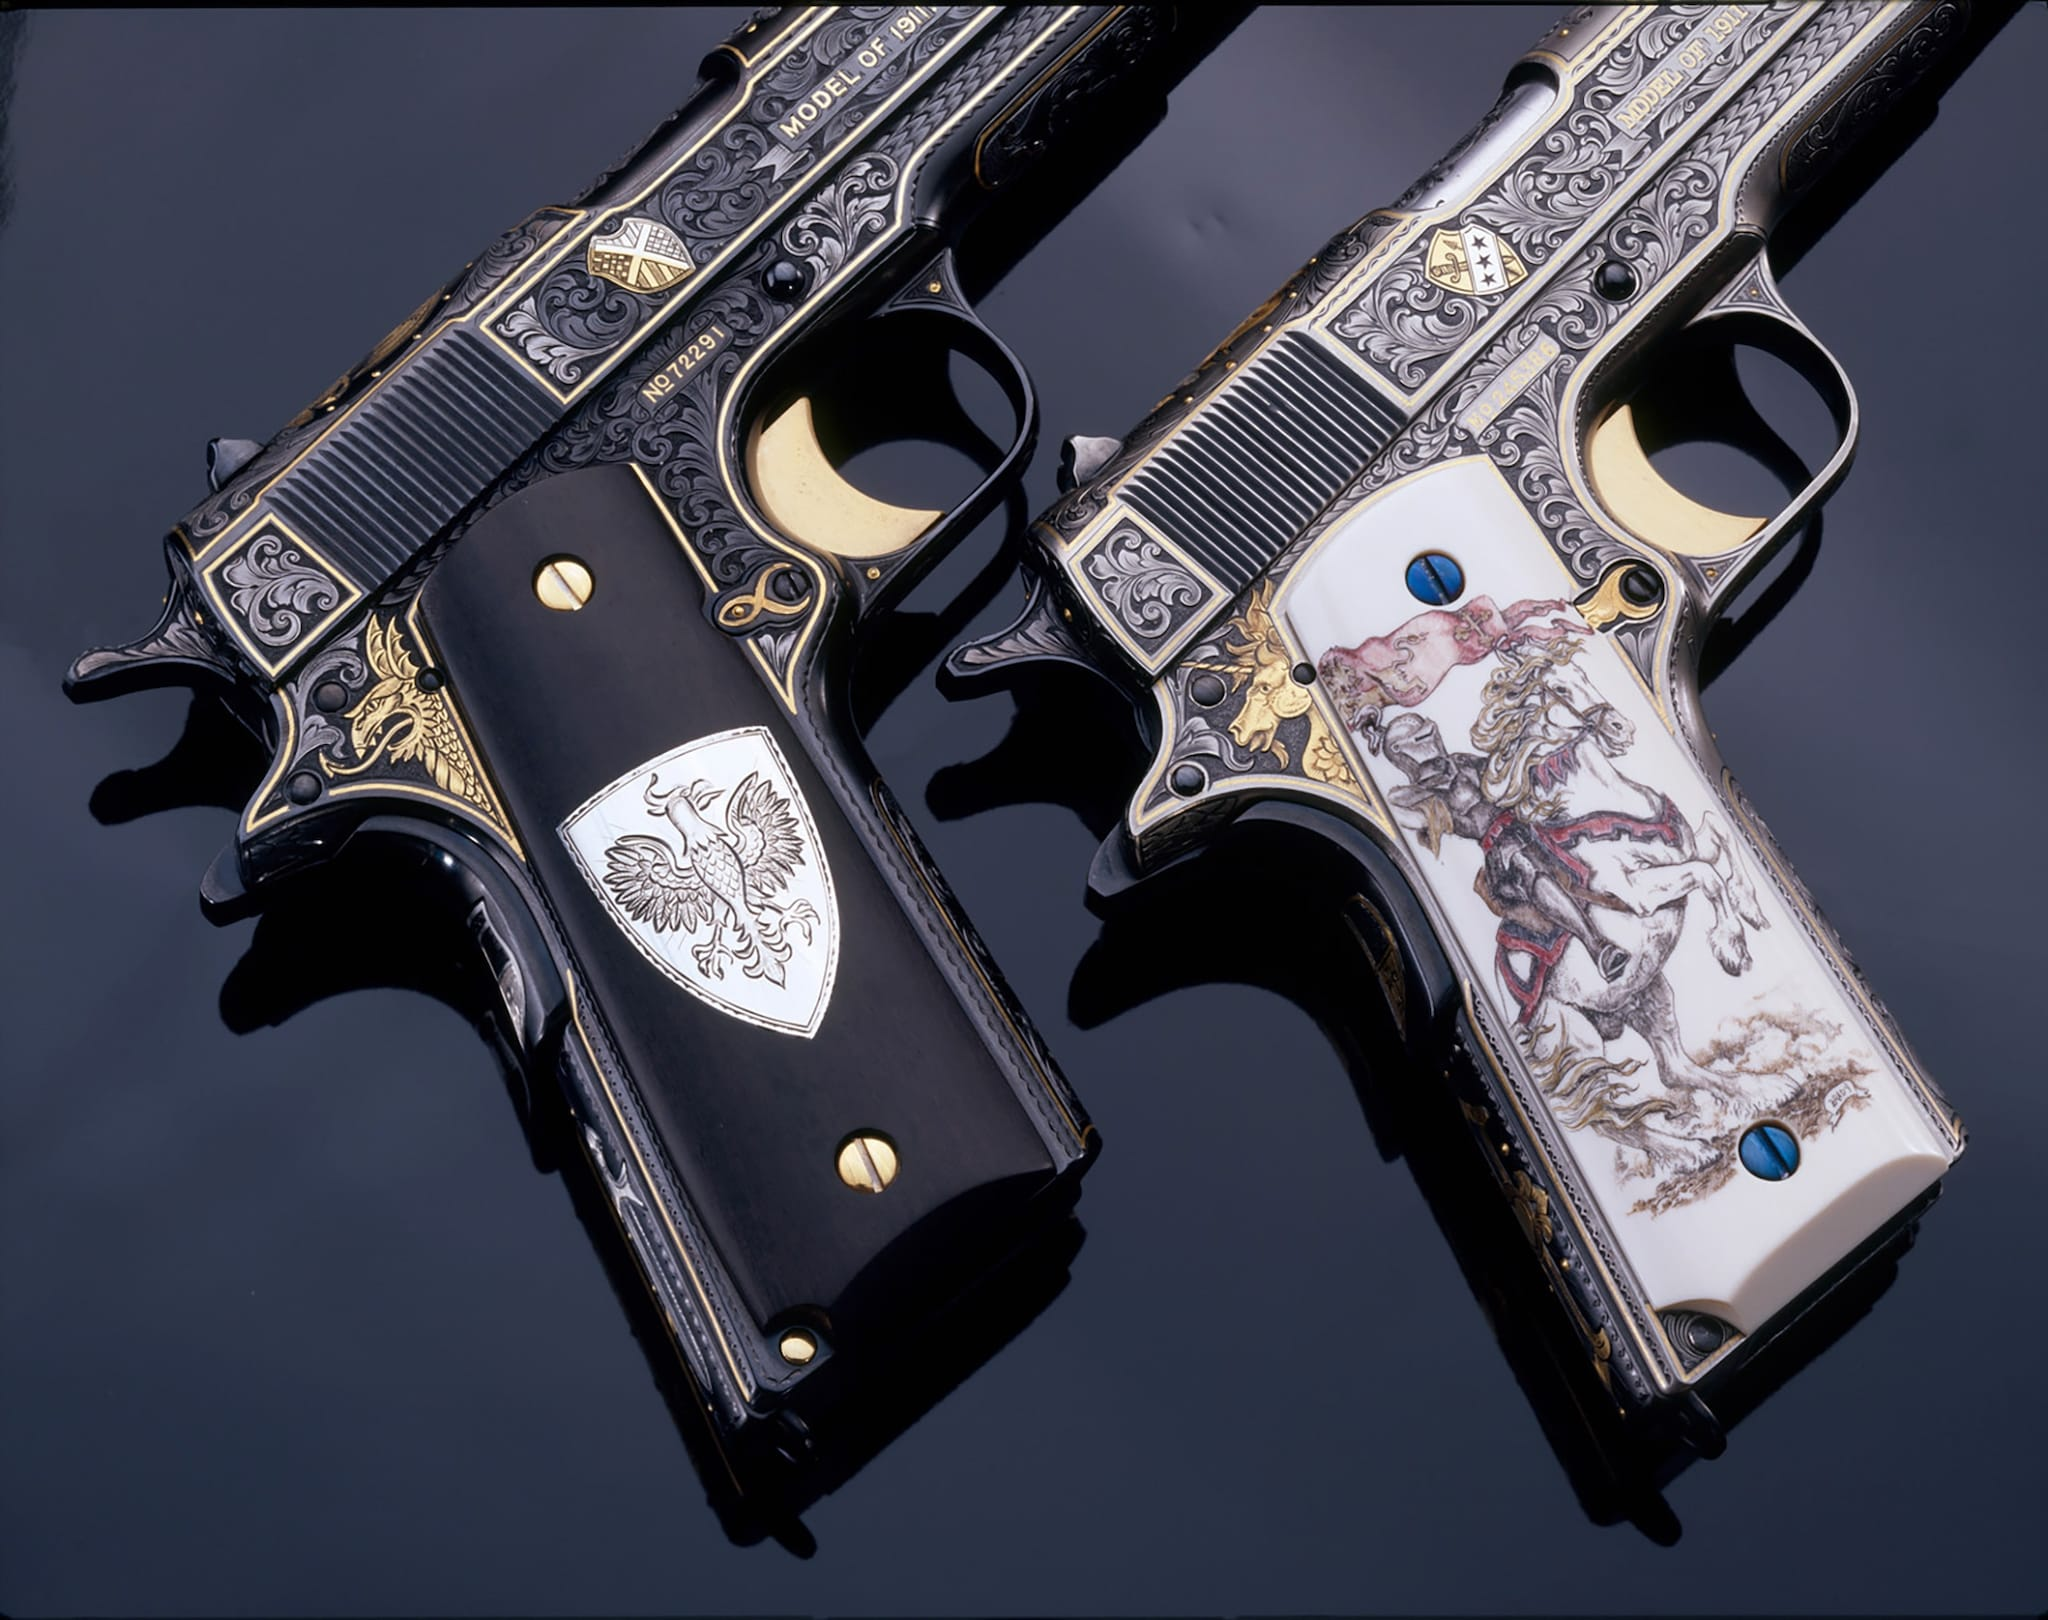 The Black and White Knights Colt .45s (Photo: Michael Dubber)